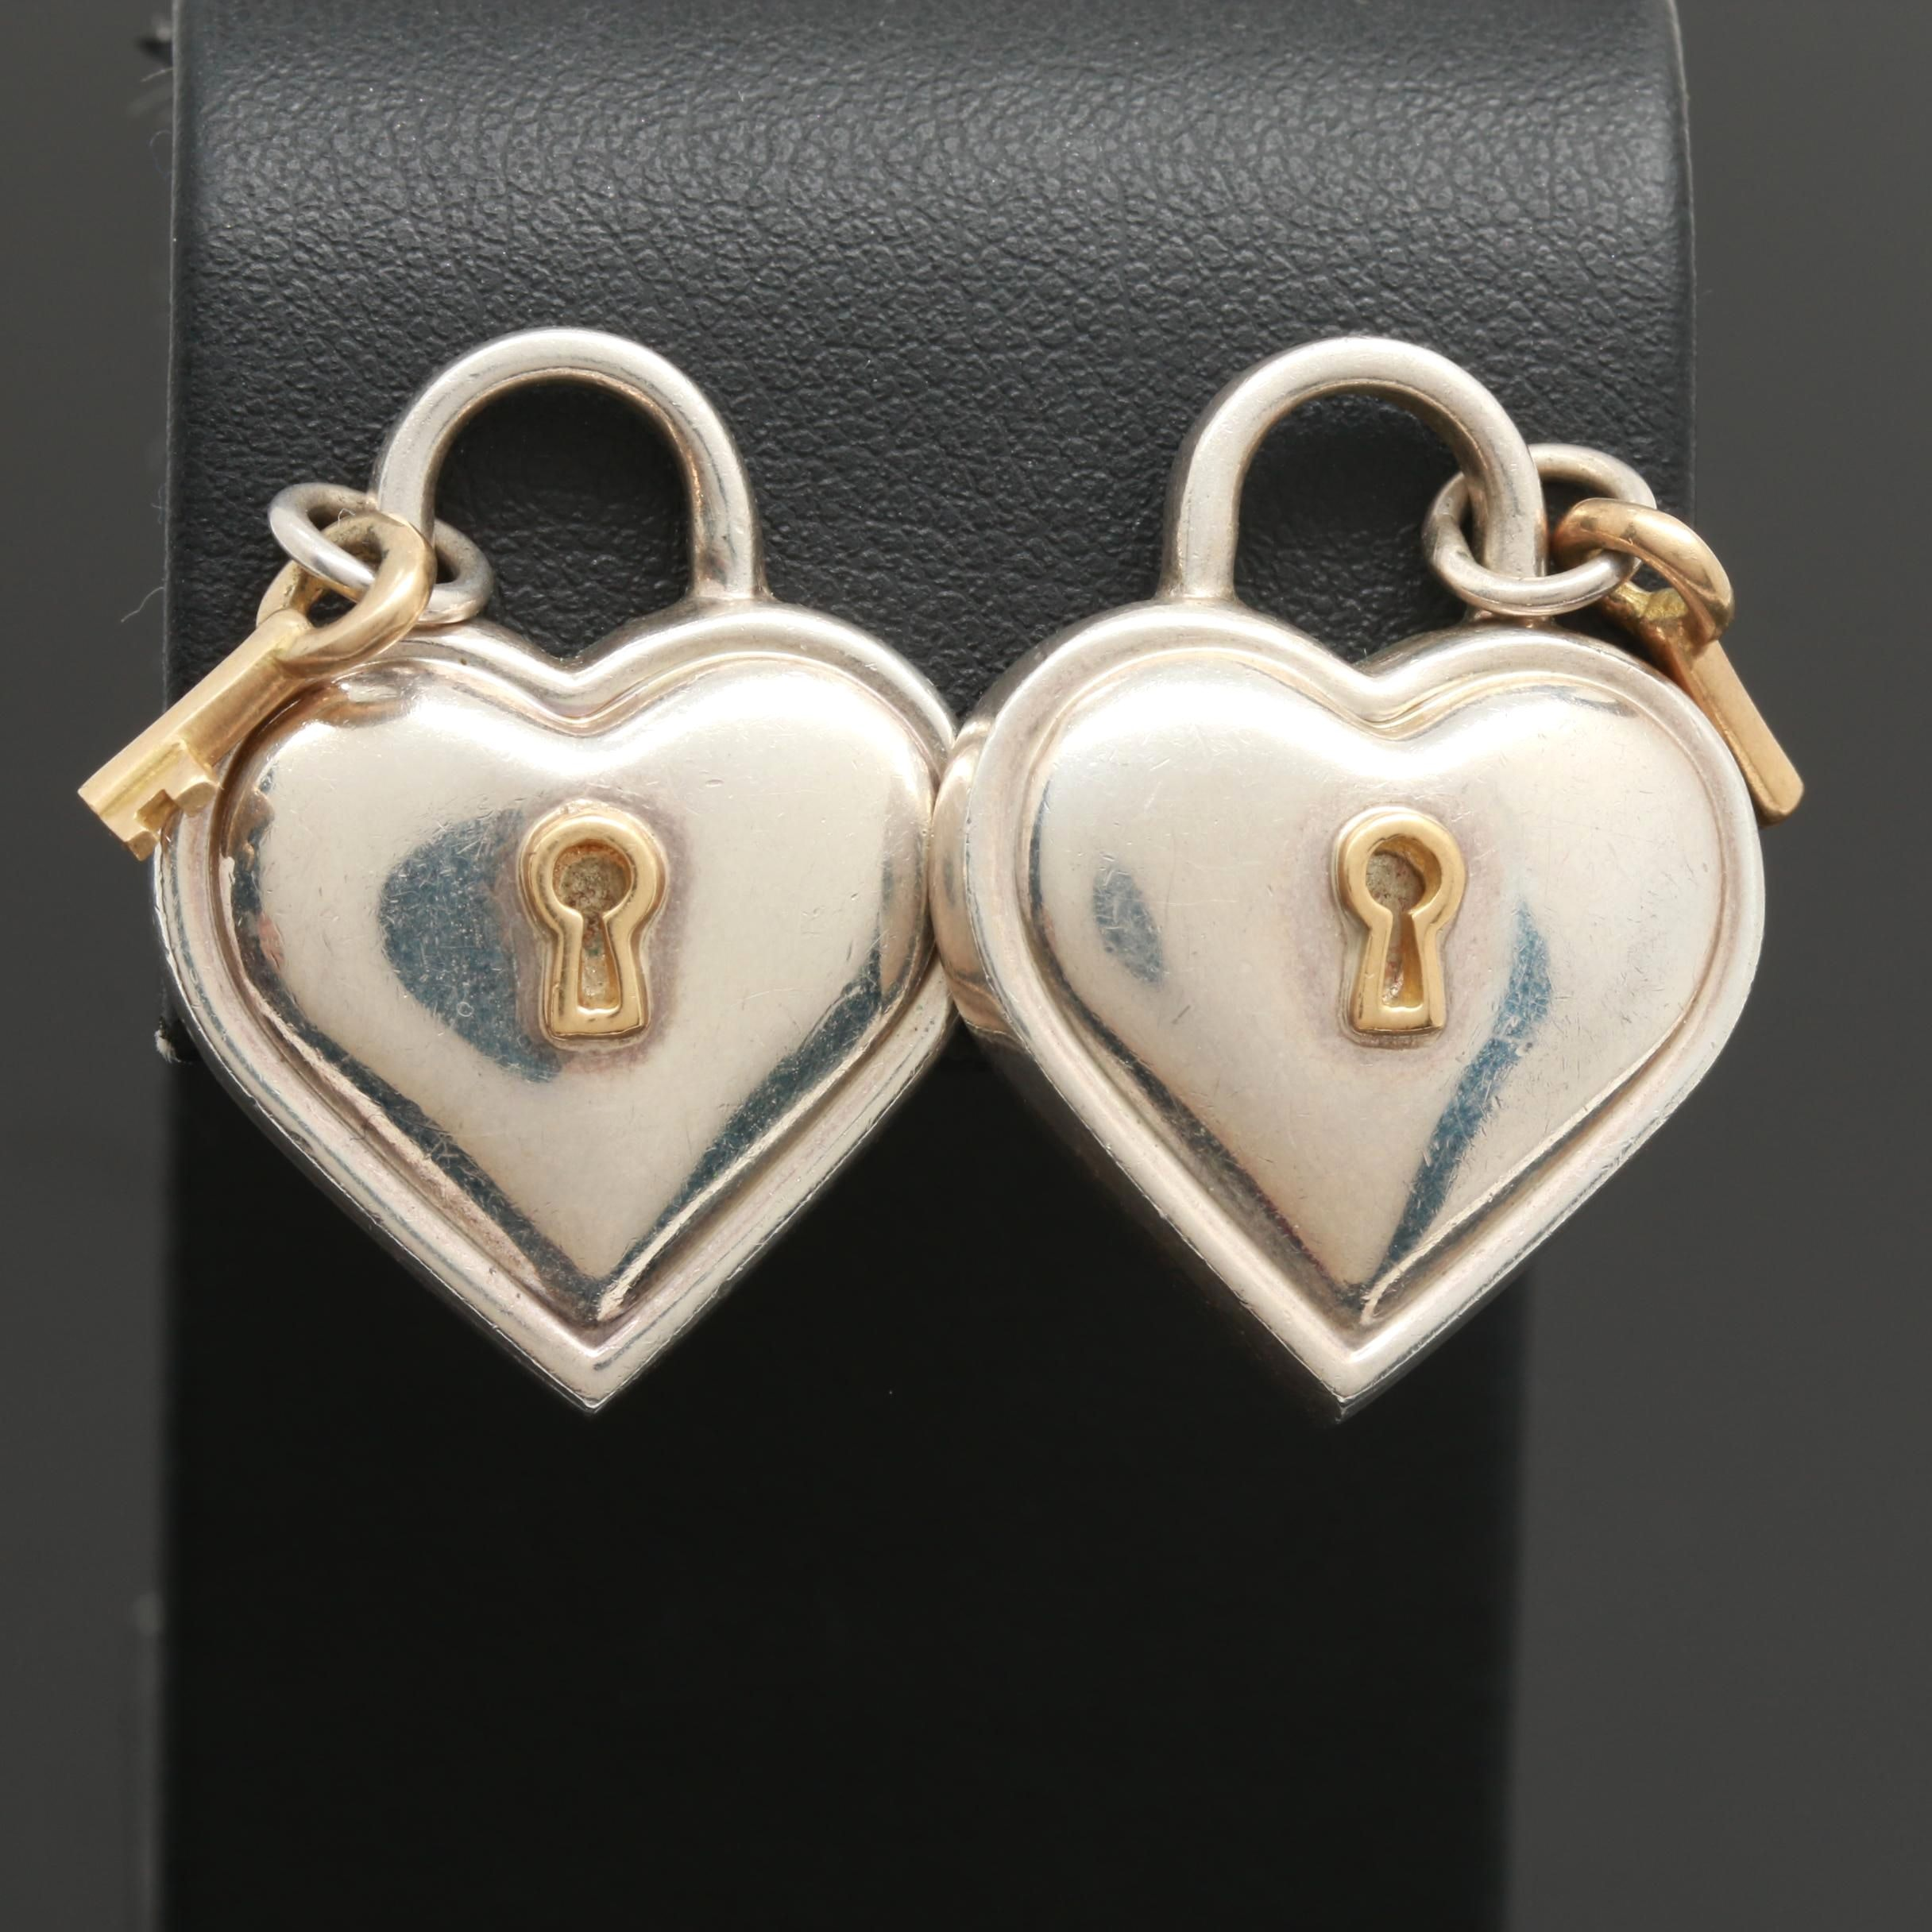 Circa 1994 Tiffany & Co. Sterling Silver and 18K Yellow Gold Heart Earrings